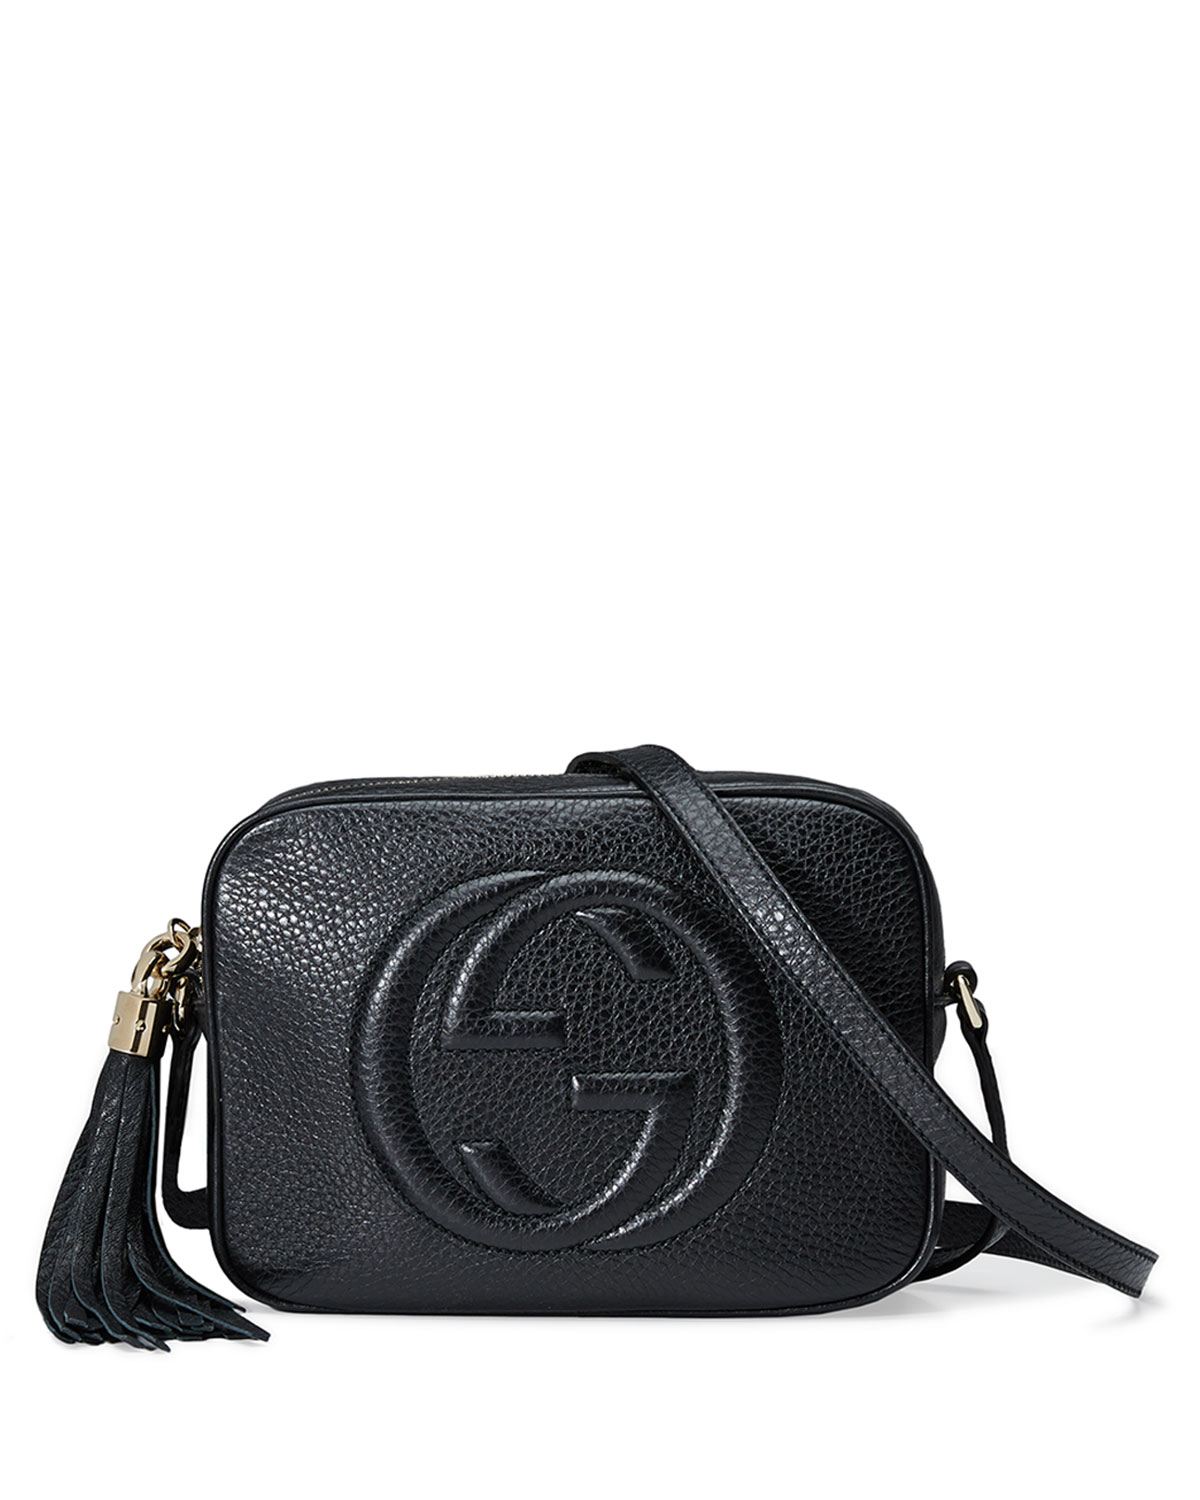 6c215c024ac Gucci Soho Leather Disco Bag